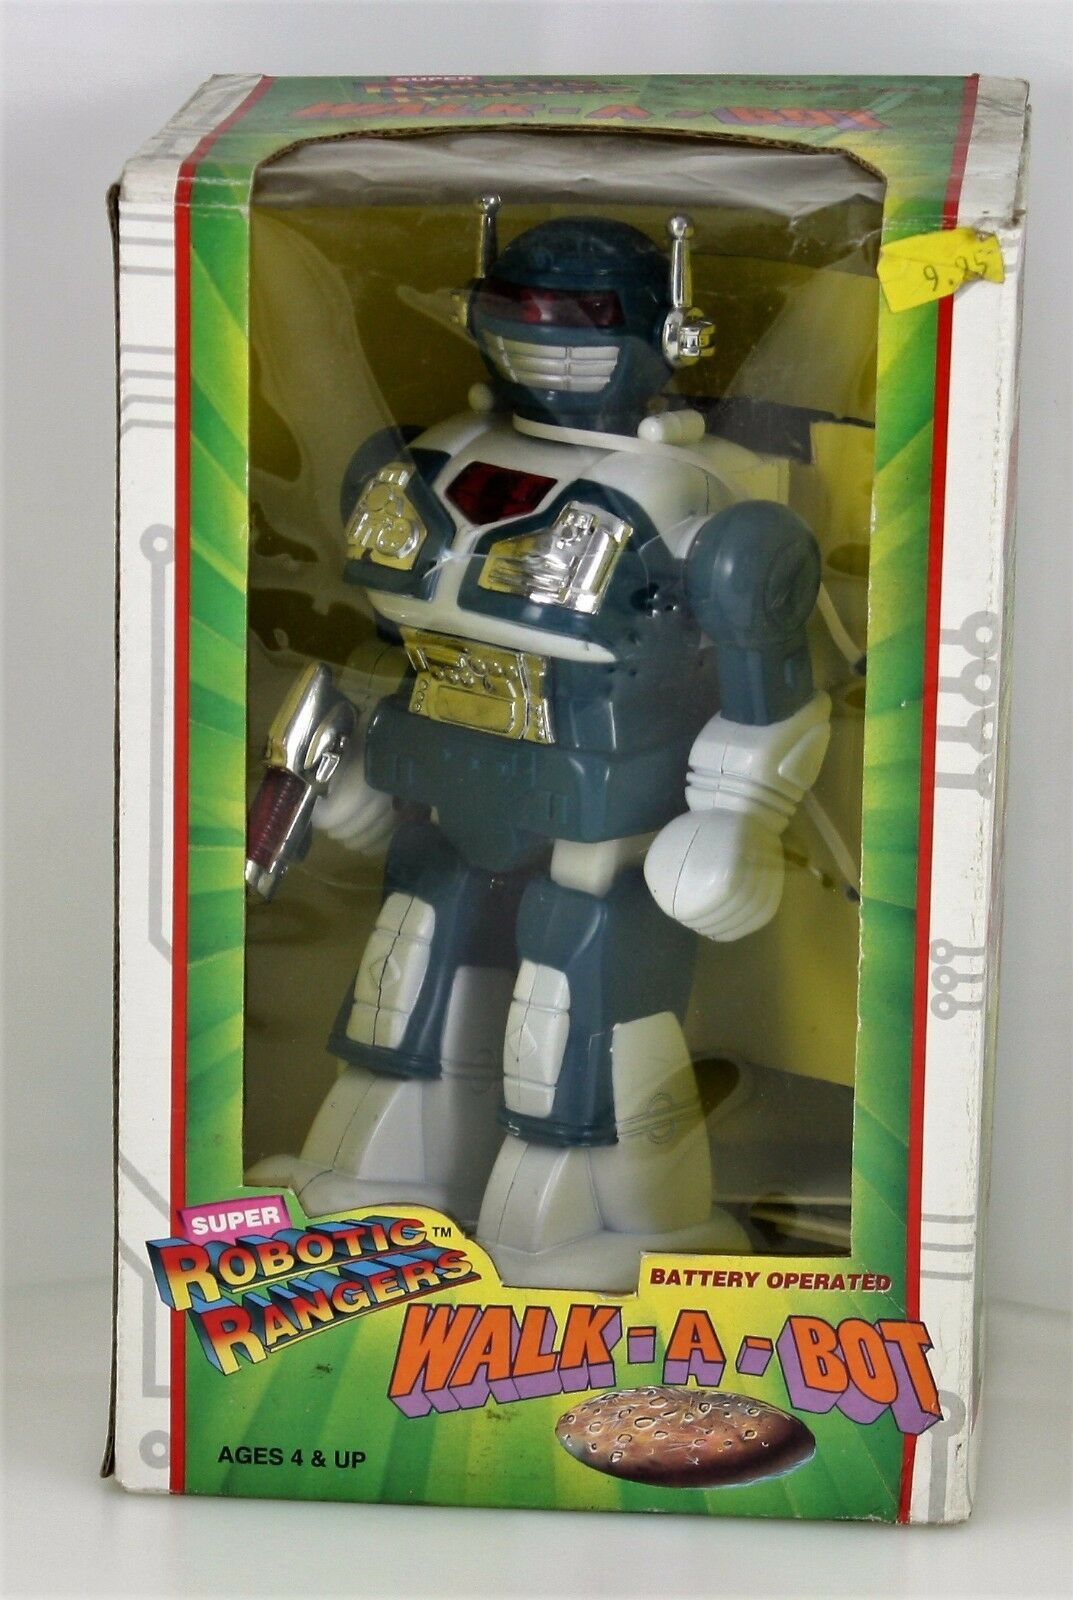 RARE SUPER ROBOTIC RANGERS WALK-A-BOT BATTERY OPERATED